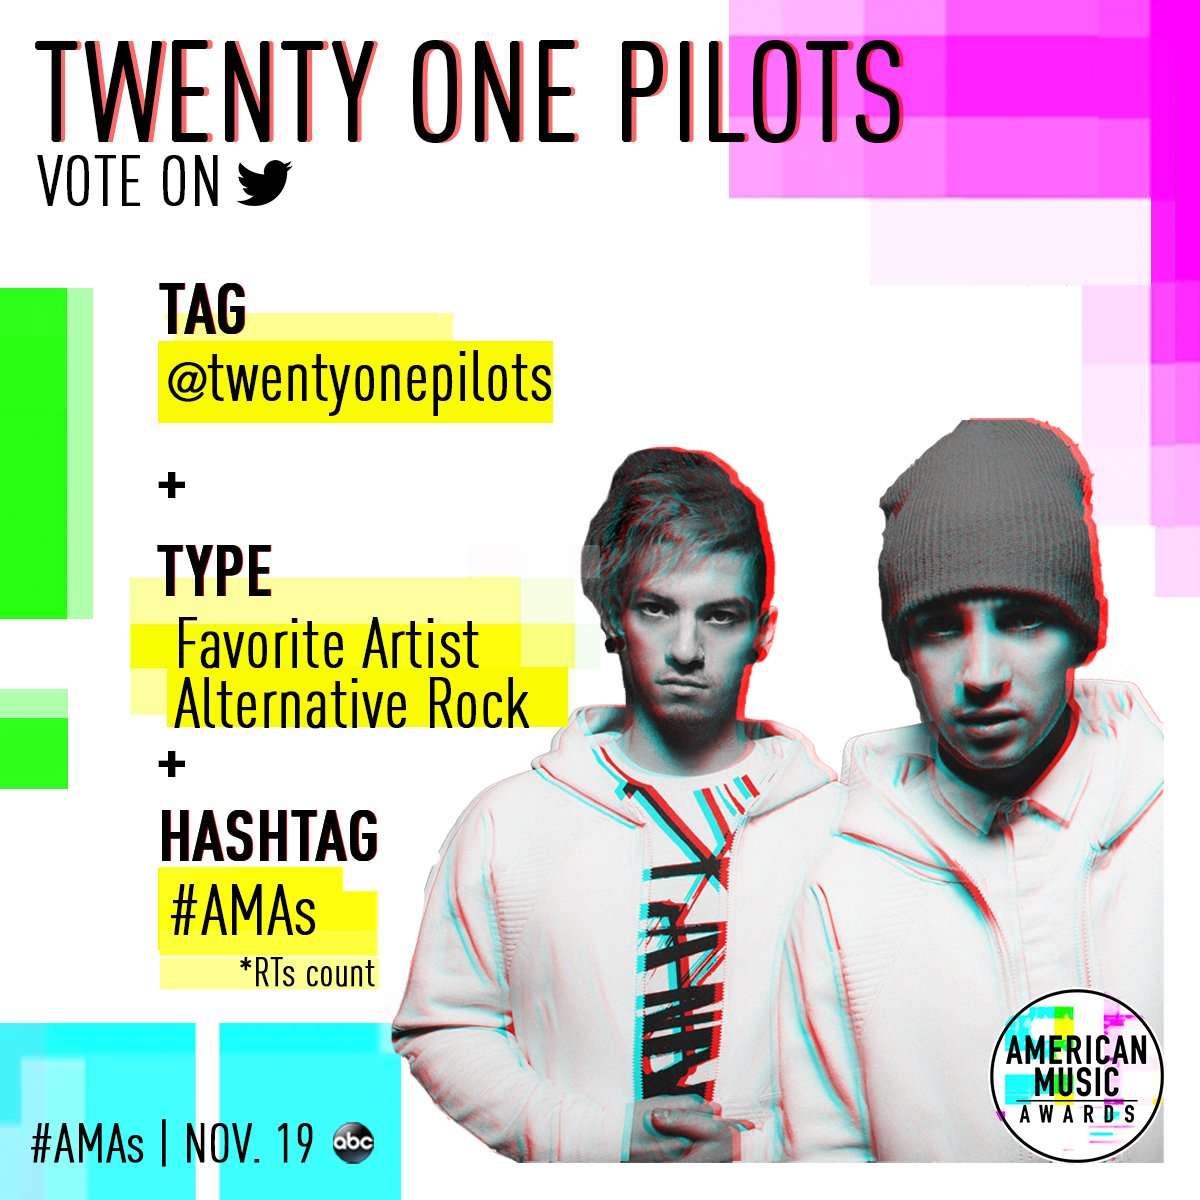 Not stressed out. 🙅 It's easy to vote for @twentyonepilots for Favorite Artist Alternative Rock at the #AMAs!